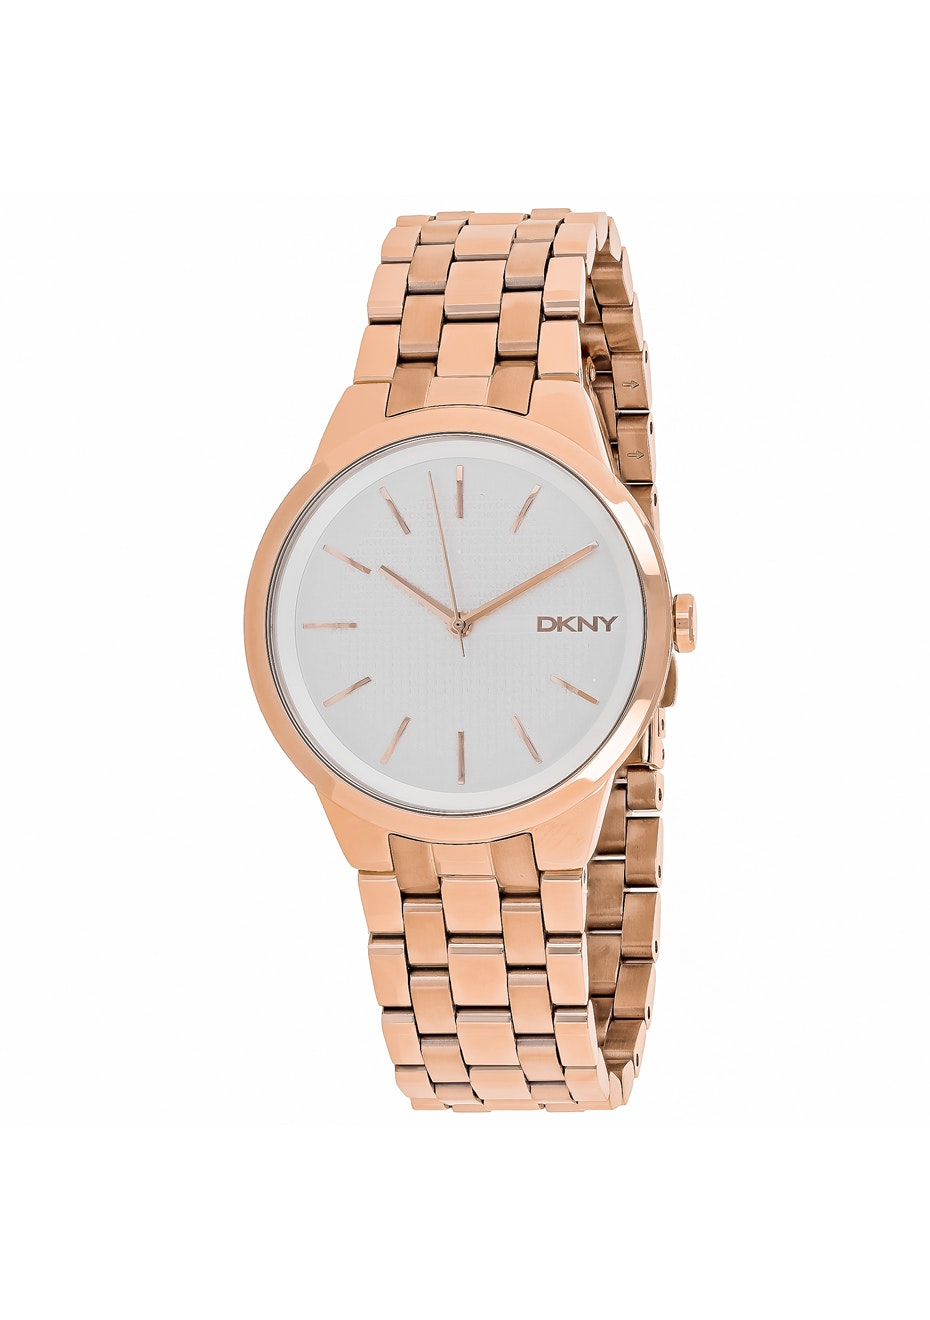 DKNY Women's Park Slope - Silver/Rose gold